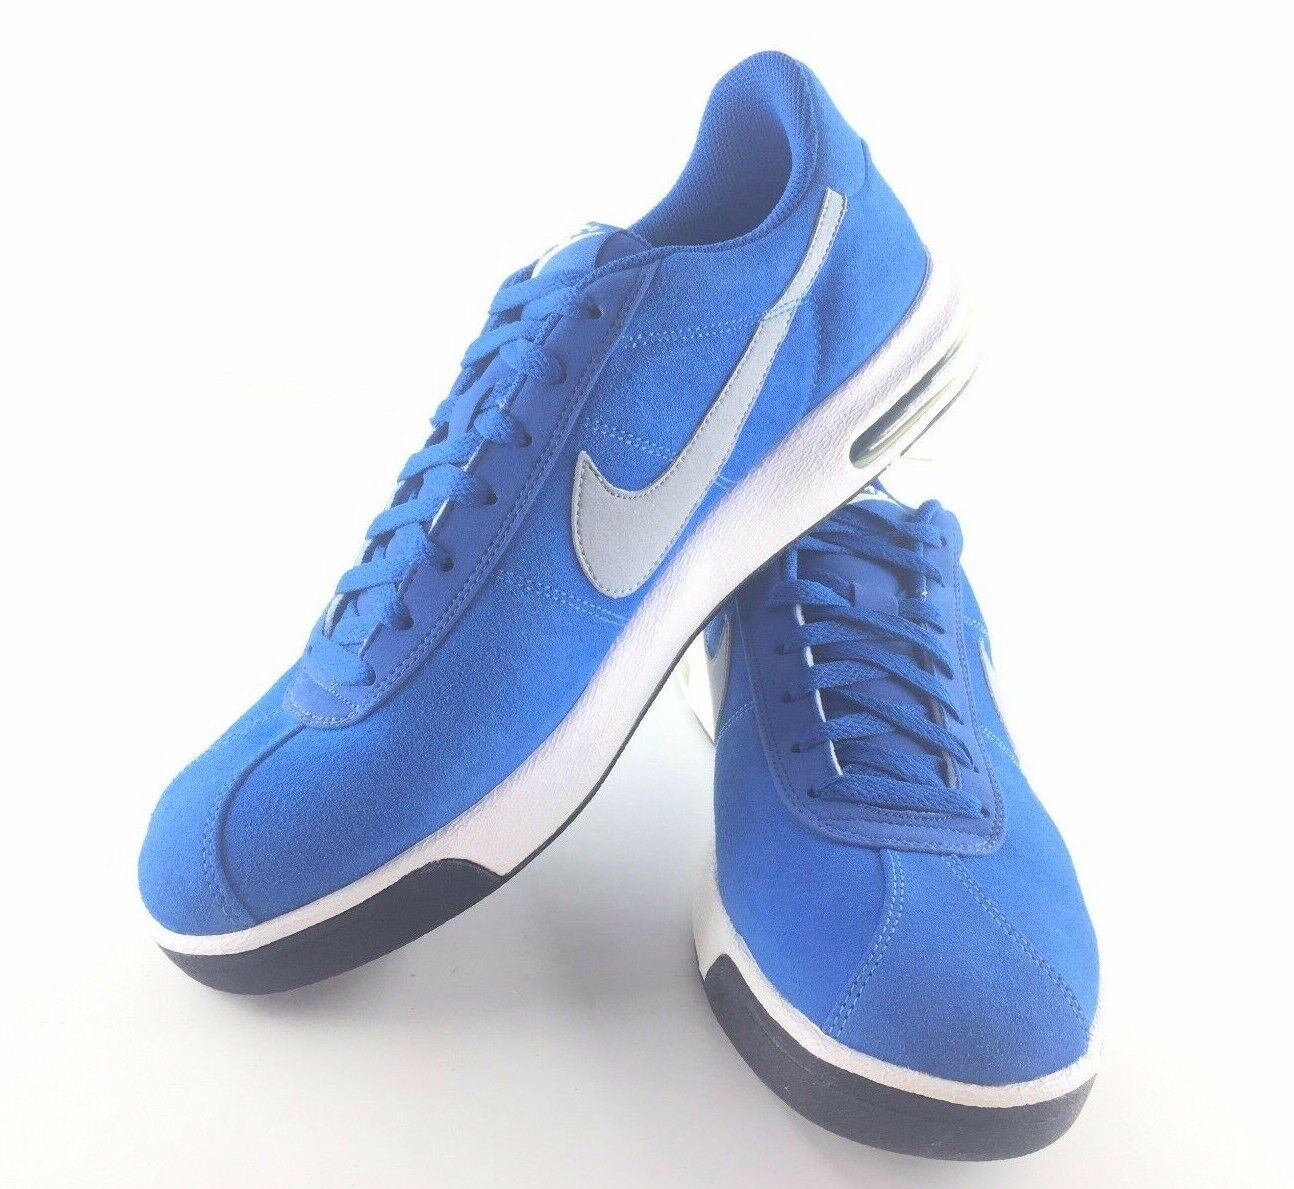 NIKE Air Bruin Max SI  bluee Suede shoes (Size 11) NEW IN BOX RARE